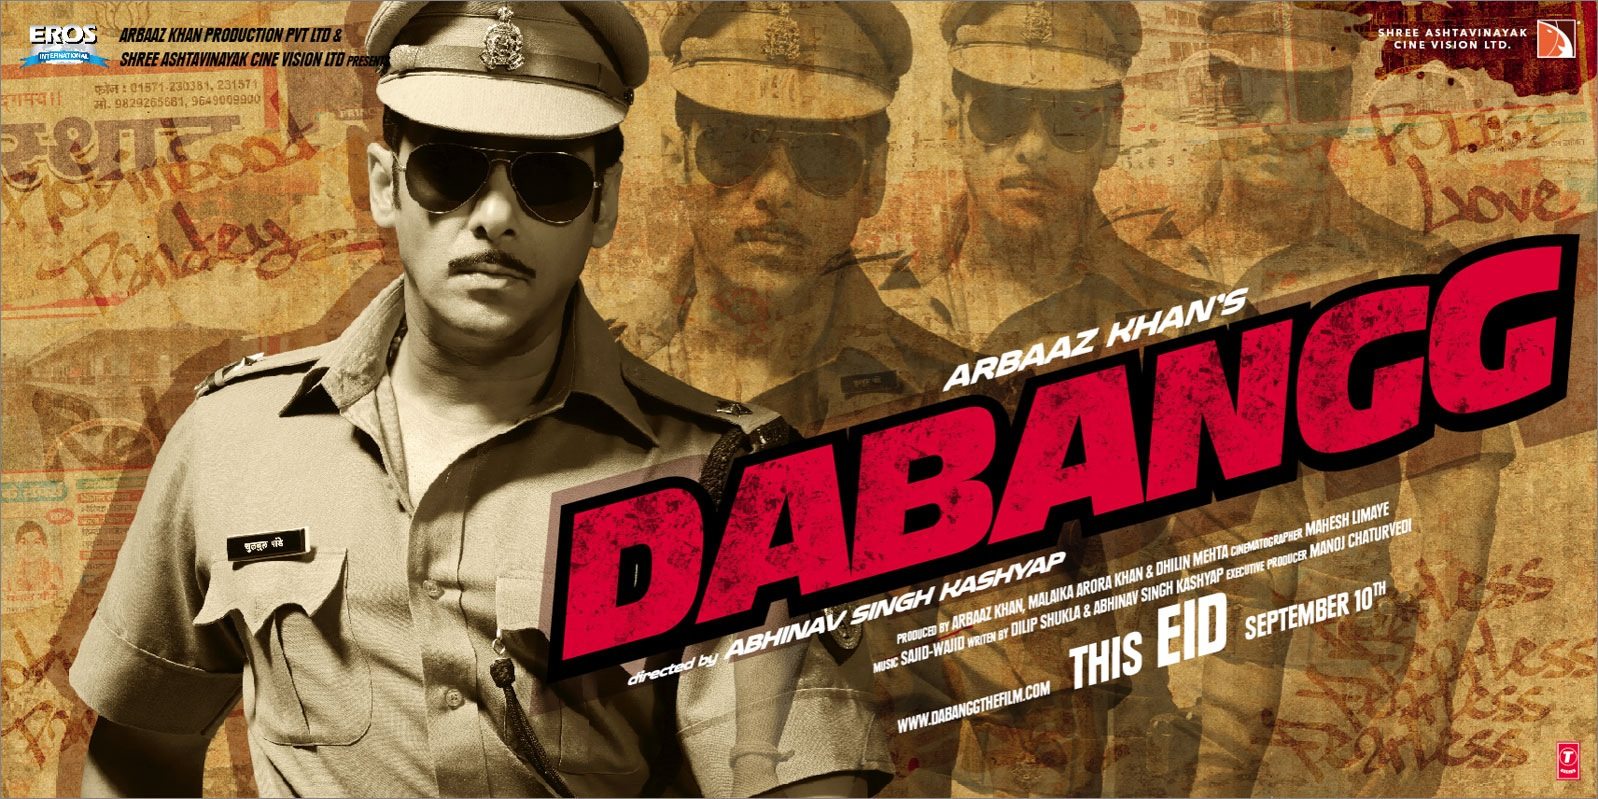 Dabangg Movie Poster